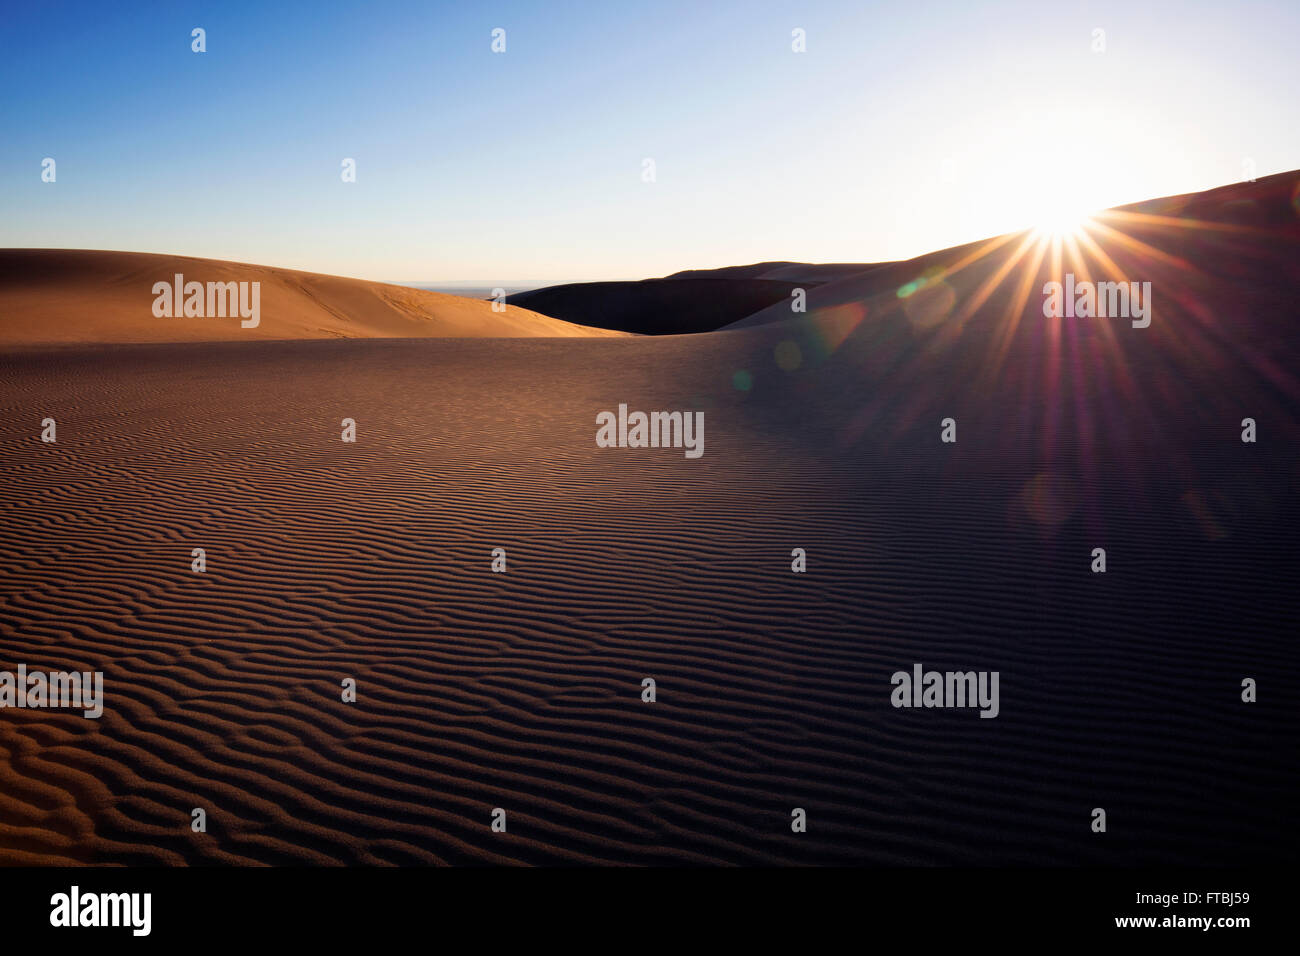 Sunlight peaking over sand dune in remote desert.  Great Sand Dunes National Park, Colorado, USA. Stock Photo